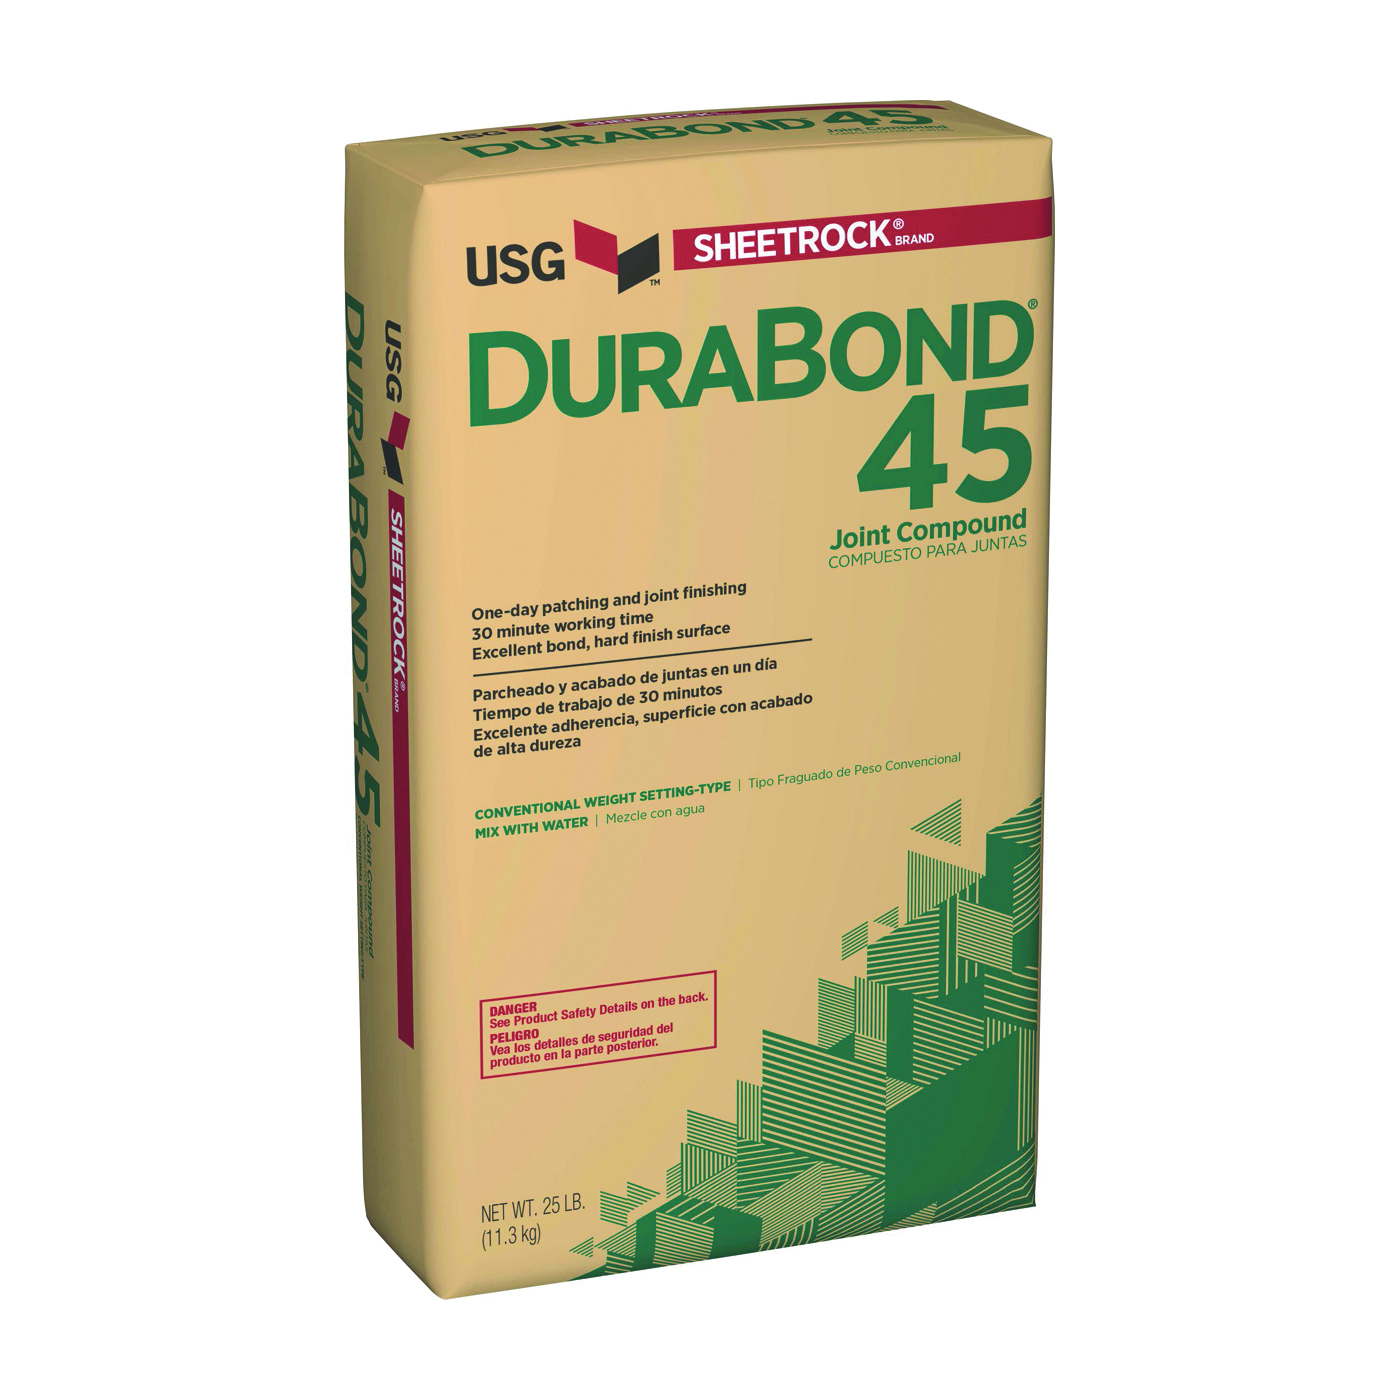 Picture of USG Durabond 381110120 Joint Compound, Powder, White, 25 lb Package, Bag